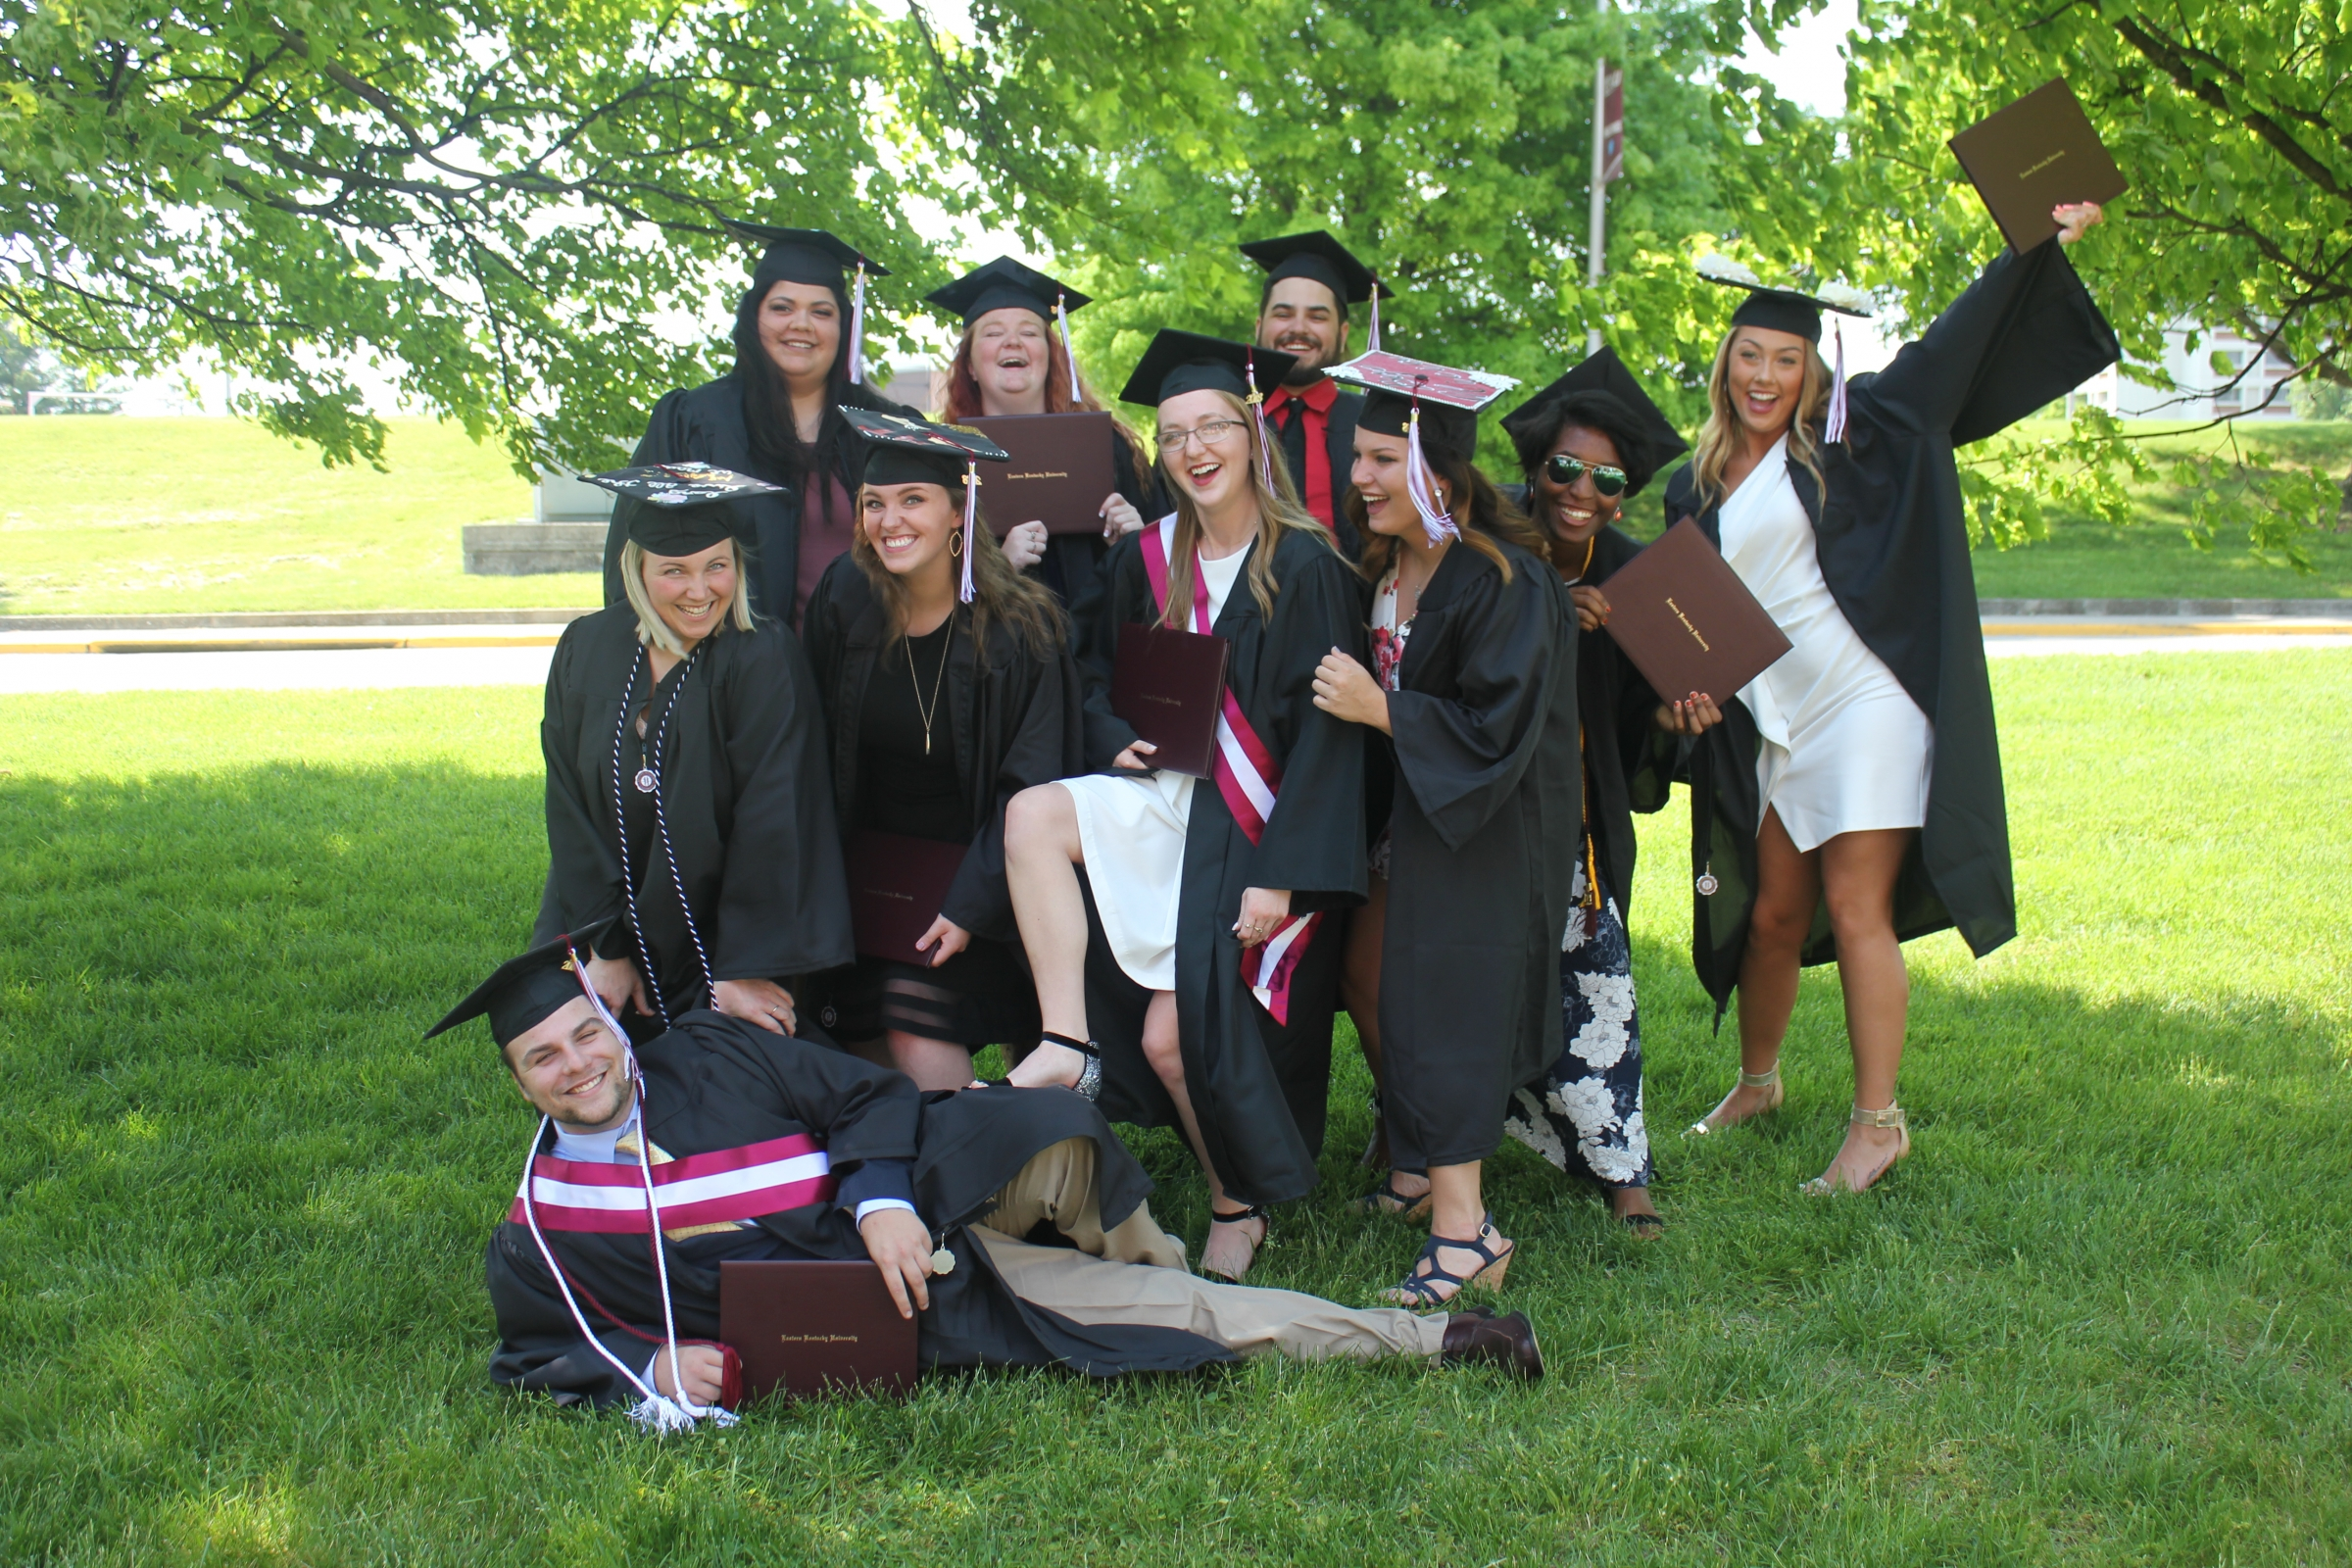 EKU's 2018 Graduation BS in Athletic Training Cohort